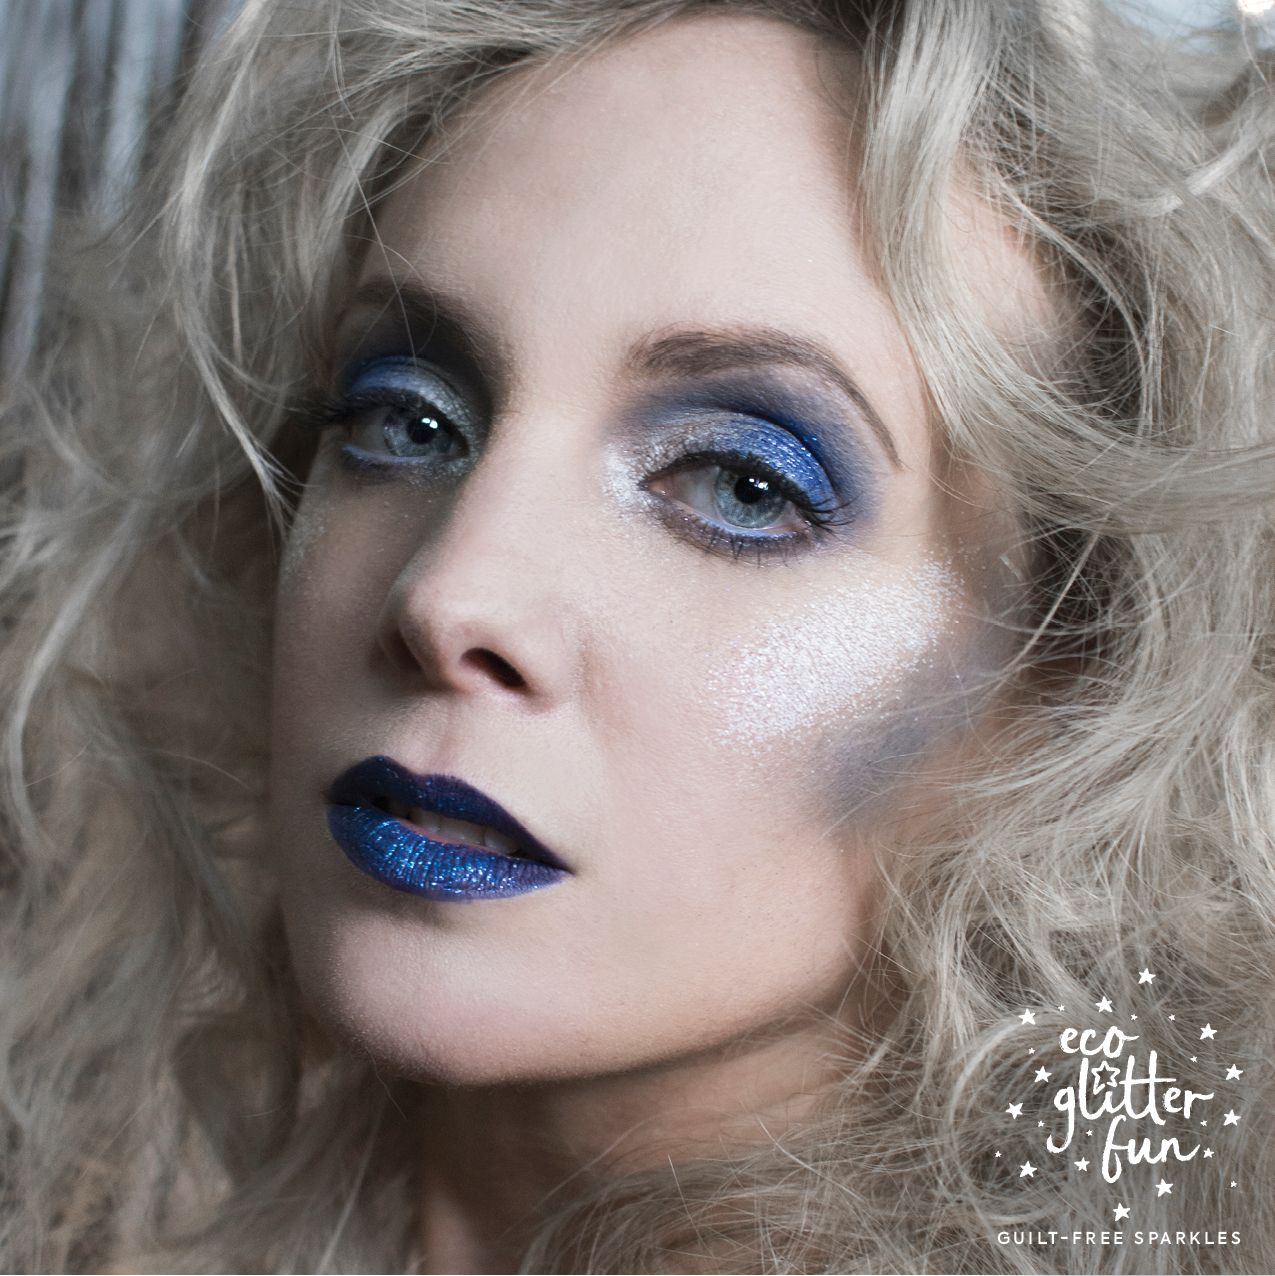 The White Witch or Ice Queen Halloween Makeup Look add